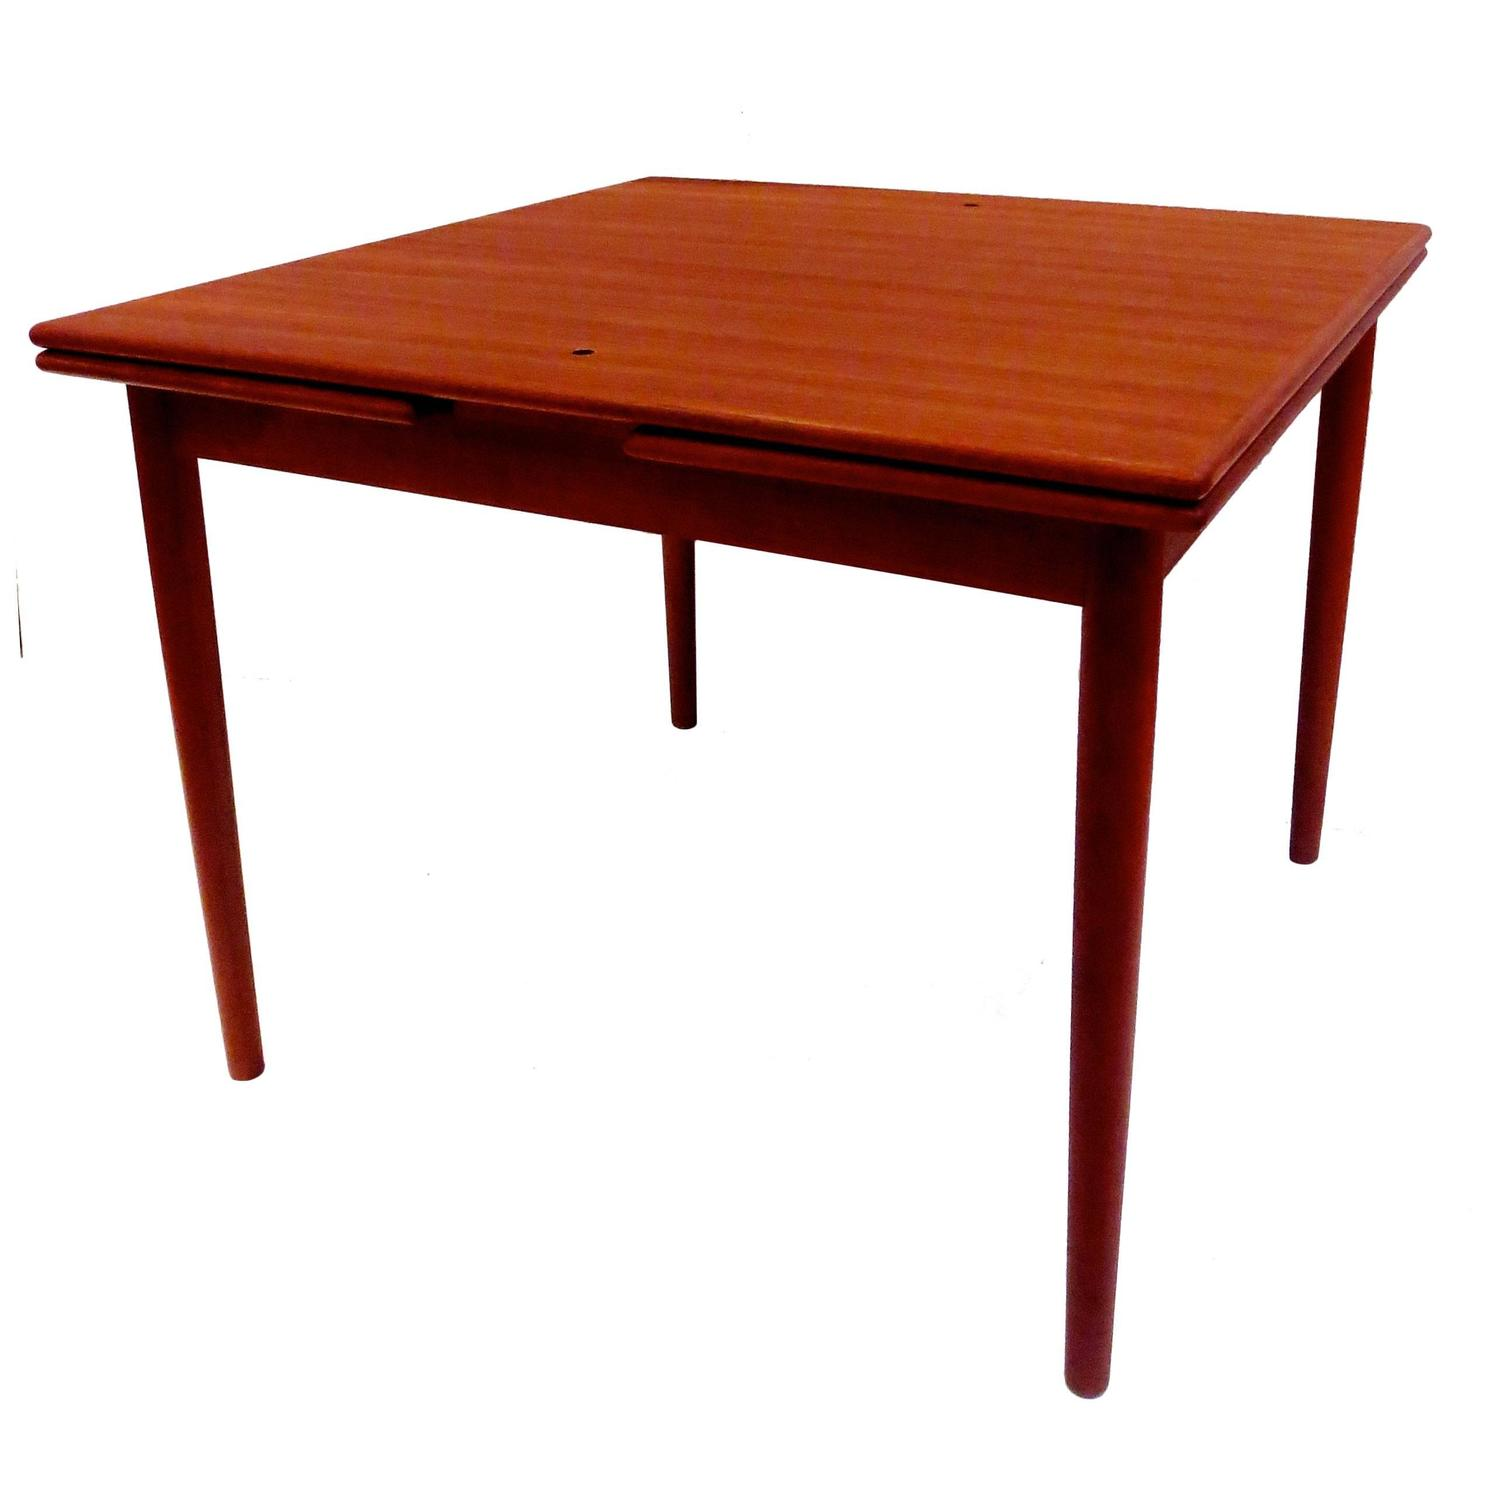 Georg petersen danish modern flip top teak and leather for Dining room tables with leaves